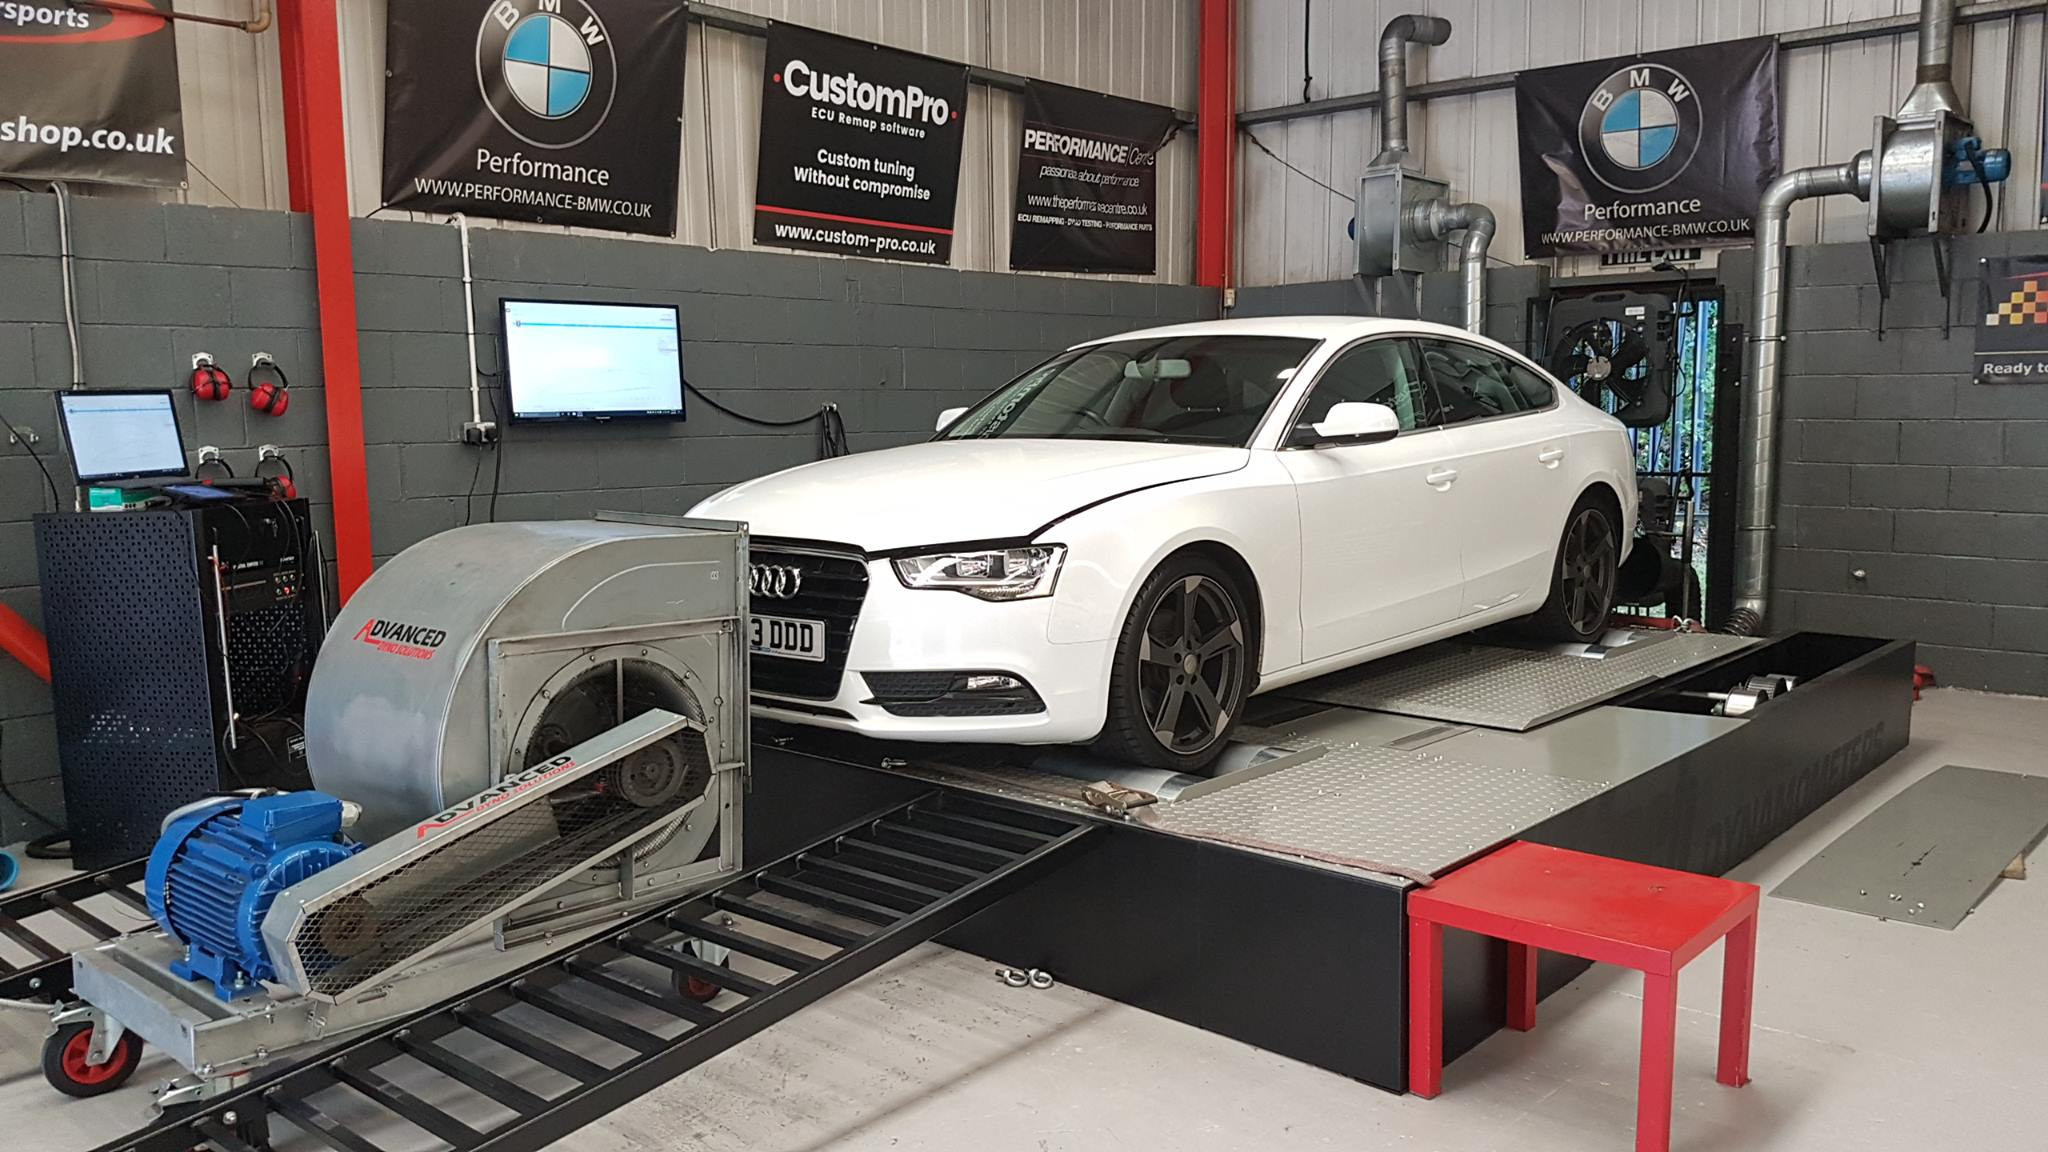 Audi A5 2.0 - CustomPro remap